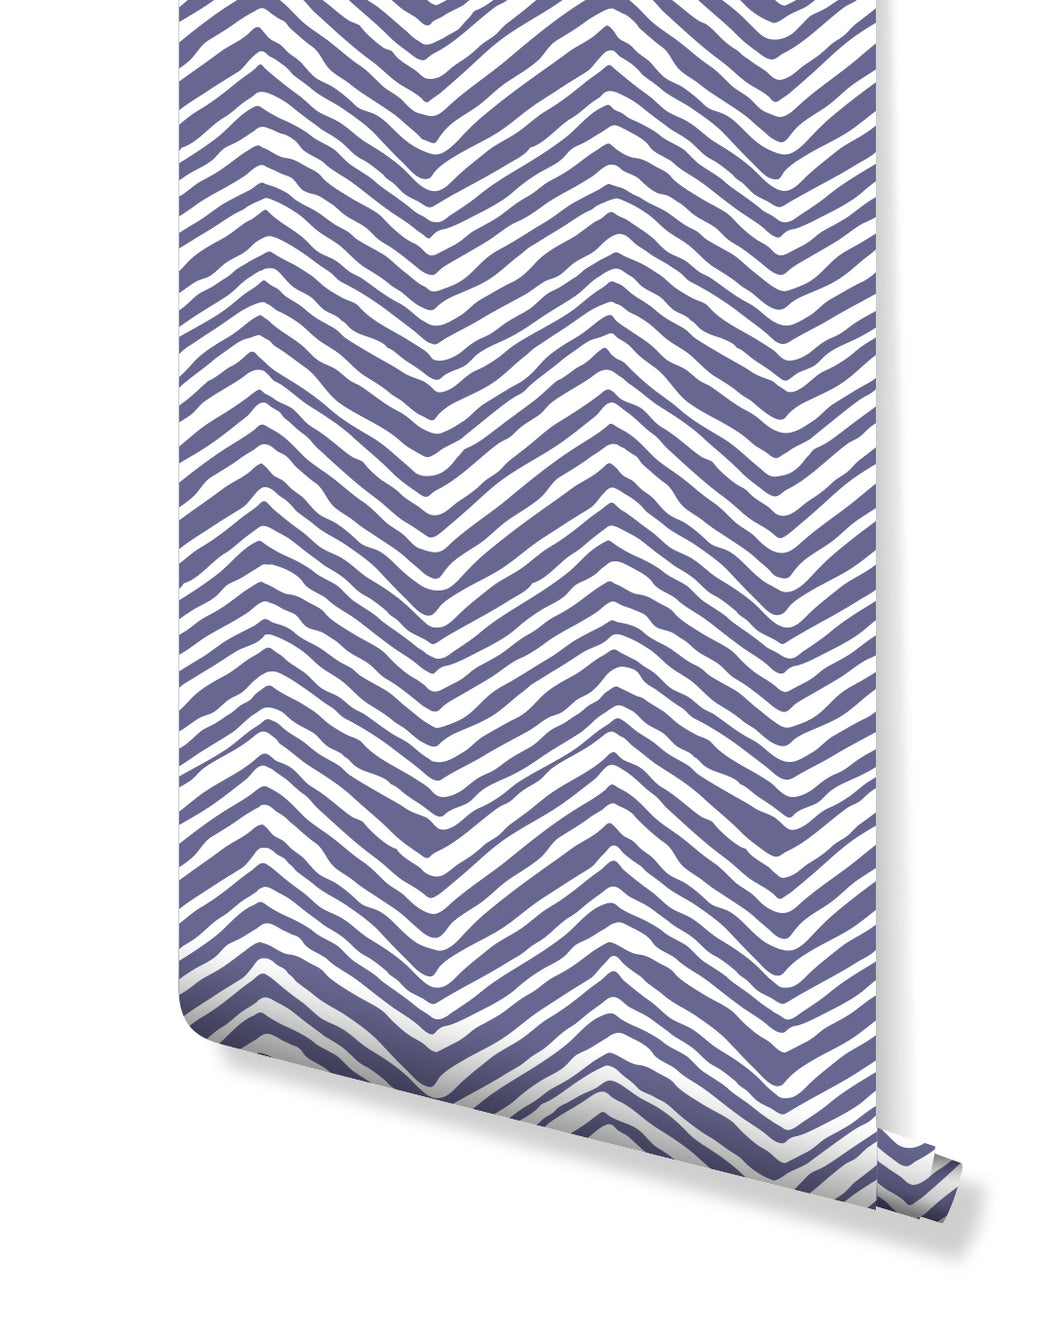 Twilight Purple Chevron ZigZag Removable Wallpaper For Renters Self Adhesive Vinyl Wall Sticker Custom Colors Available